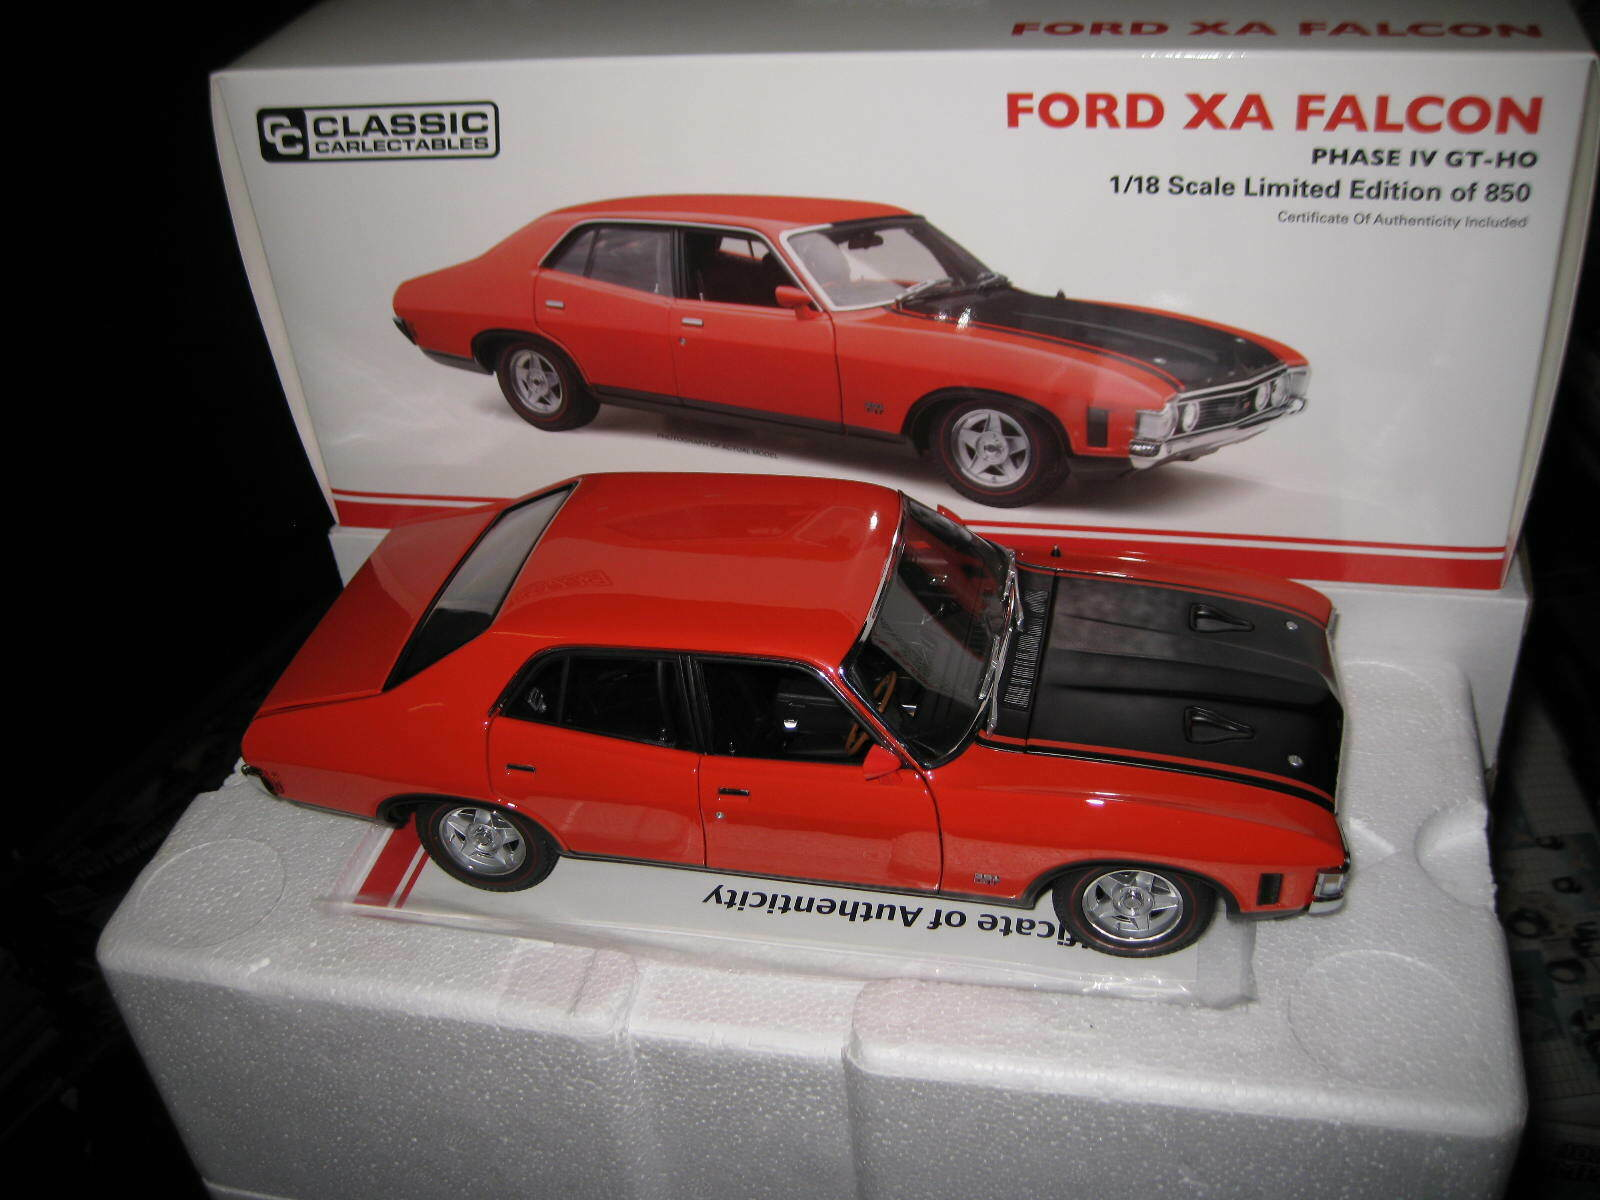 CLASSIC 1 18 FORD XA FALCON PHASE IV GT-HO 4dr SEDAN  rosso  AWESOME MODEL